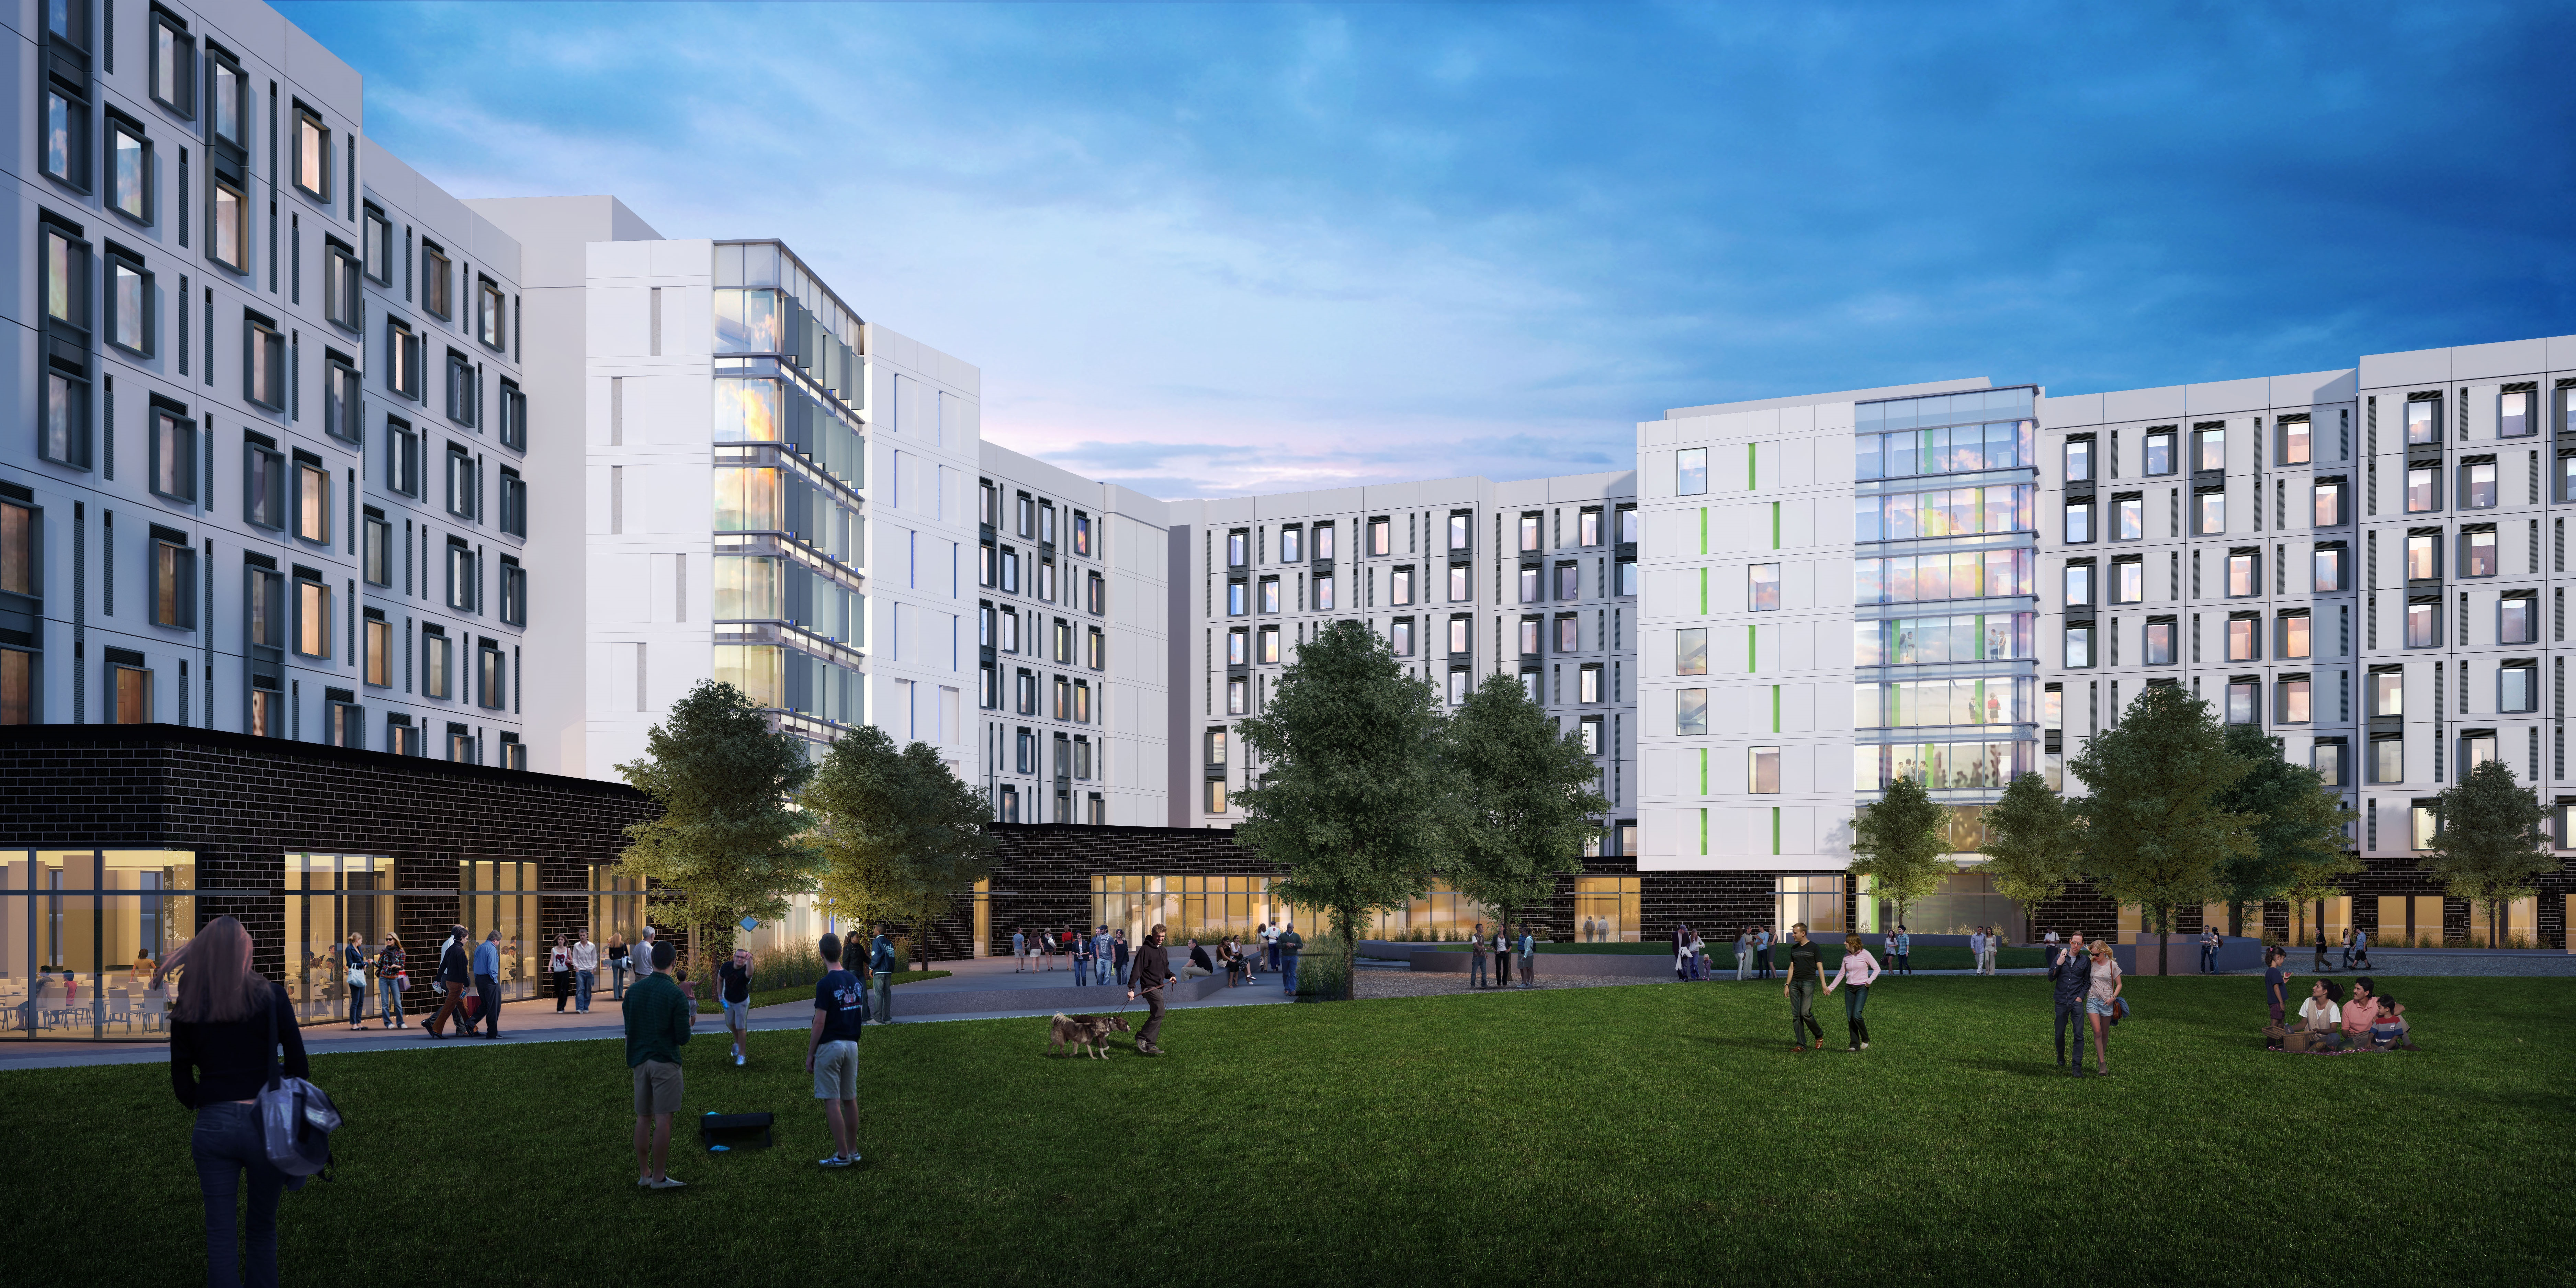 Rendering of new student housing facility